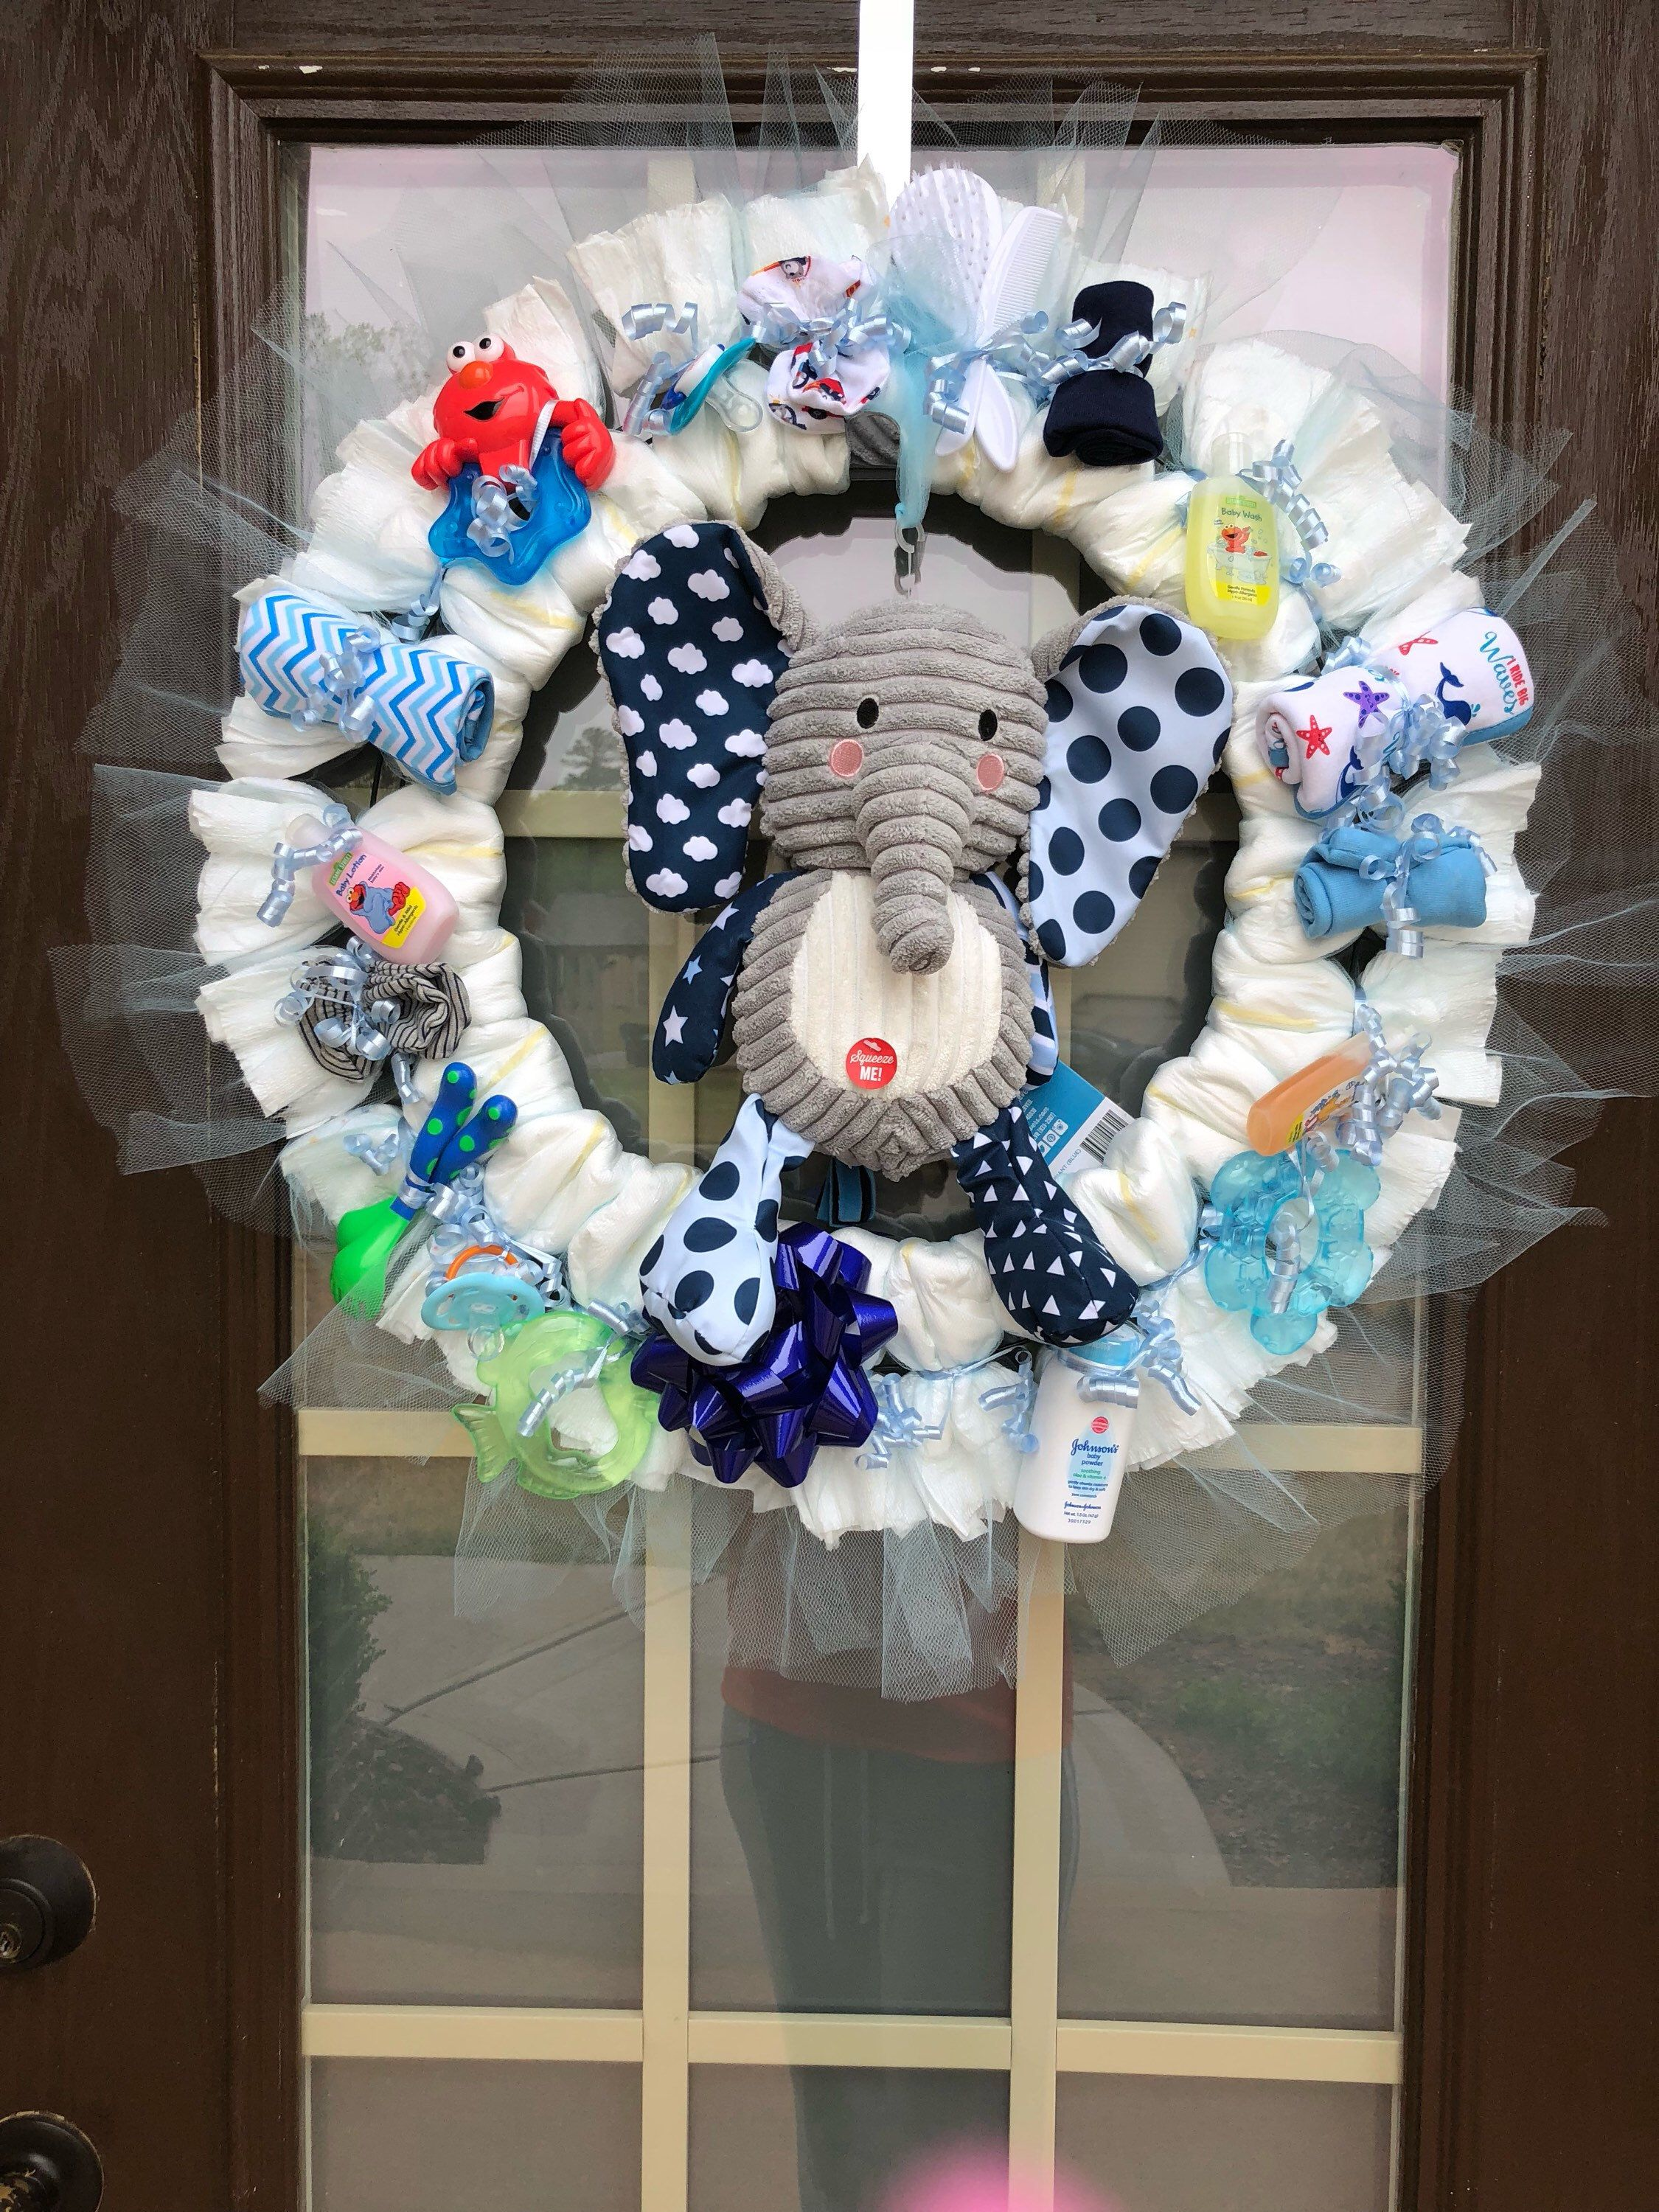 Pin by Tynnetta Parks on Tyesha baby shower in 2019 | Pinterest | Baby  shower diapers, Diaper wreath and Baby Shower